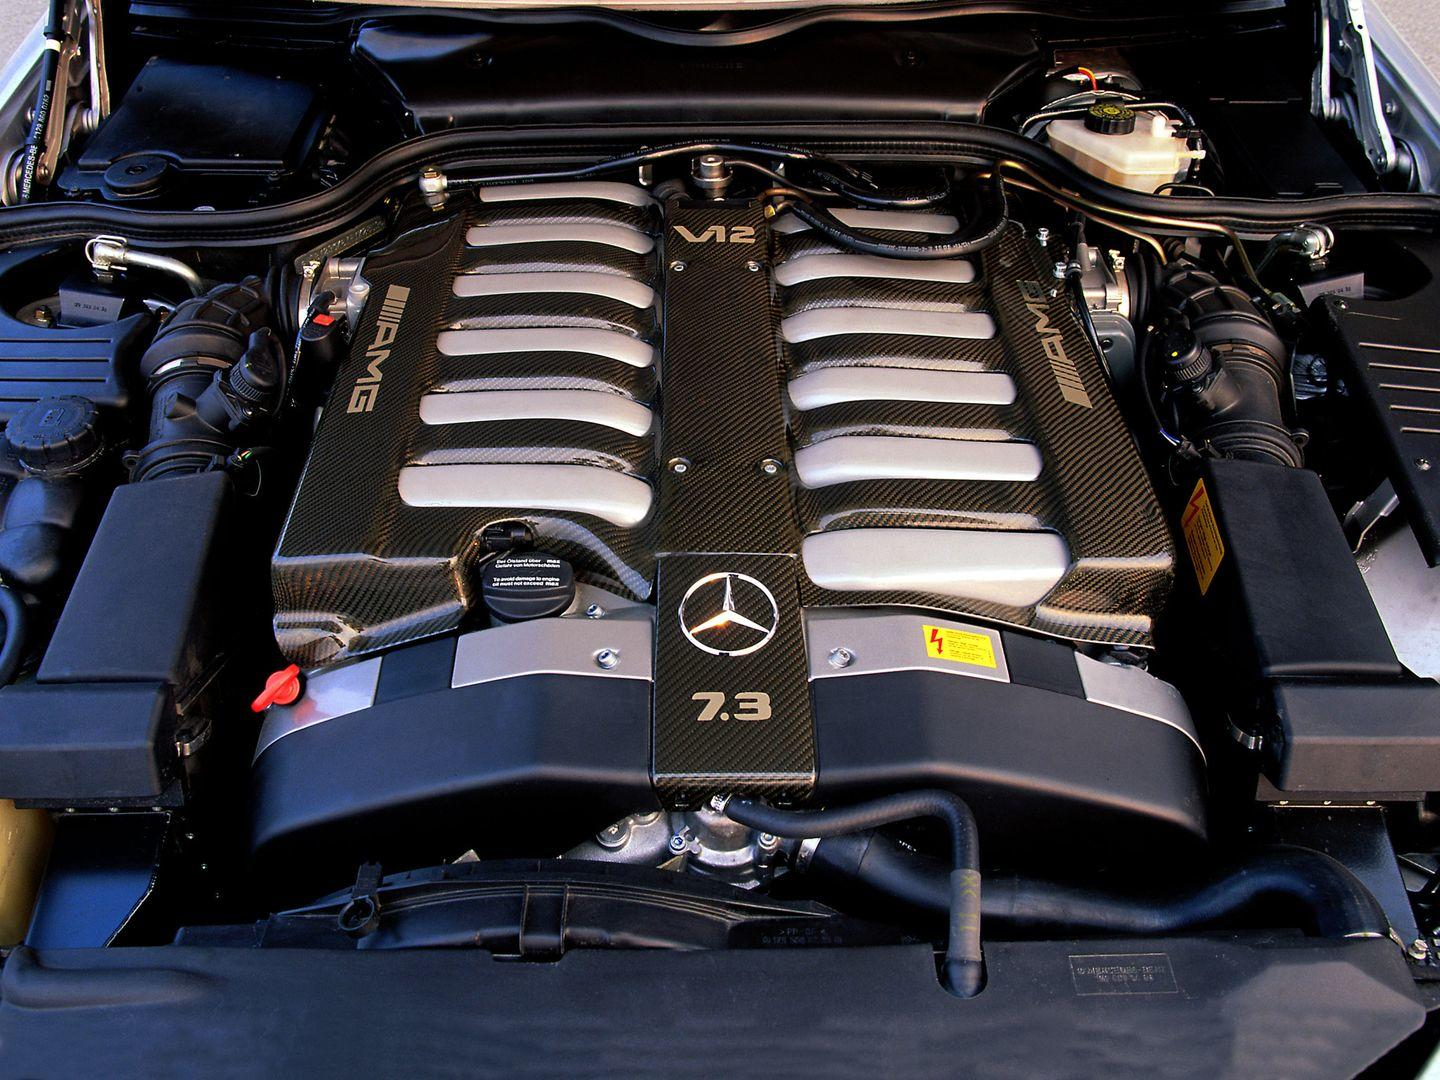 V12 7.2 do Mercedes-Benz SL 73 AMG